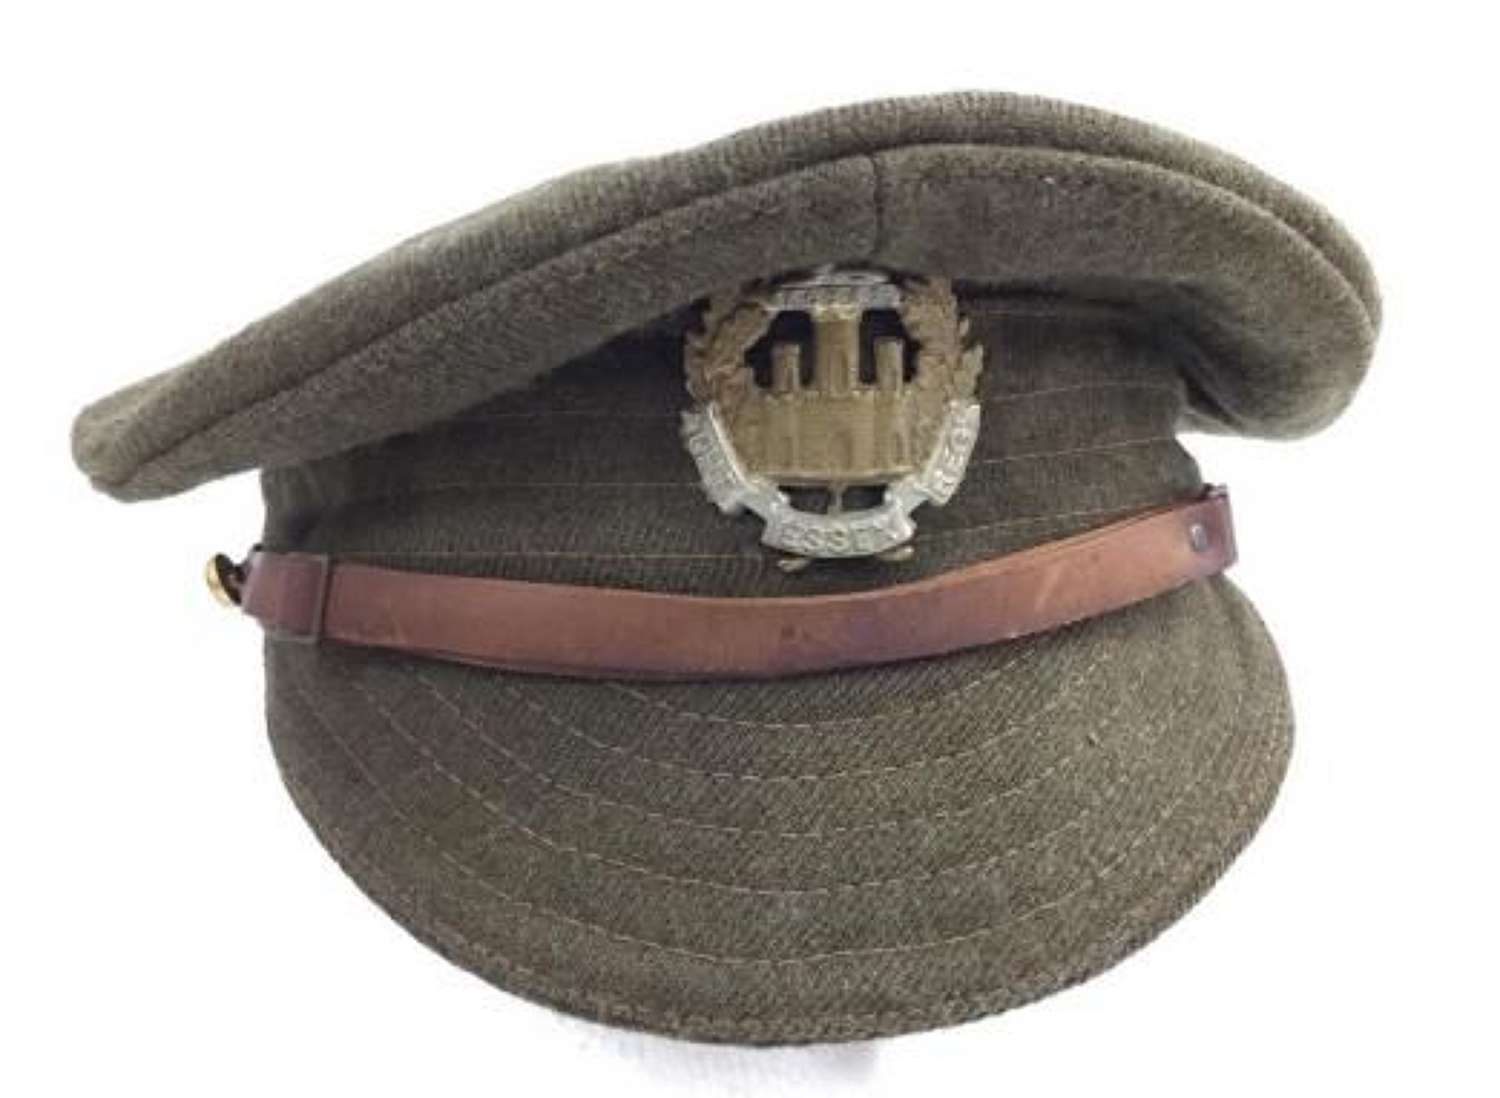 Original 1917 Dated British Army Trench Cap